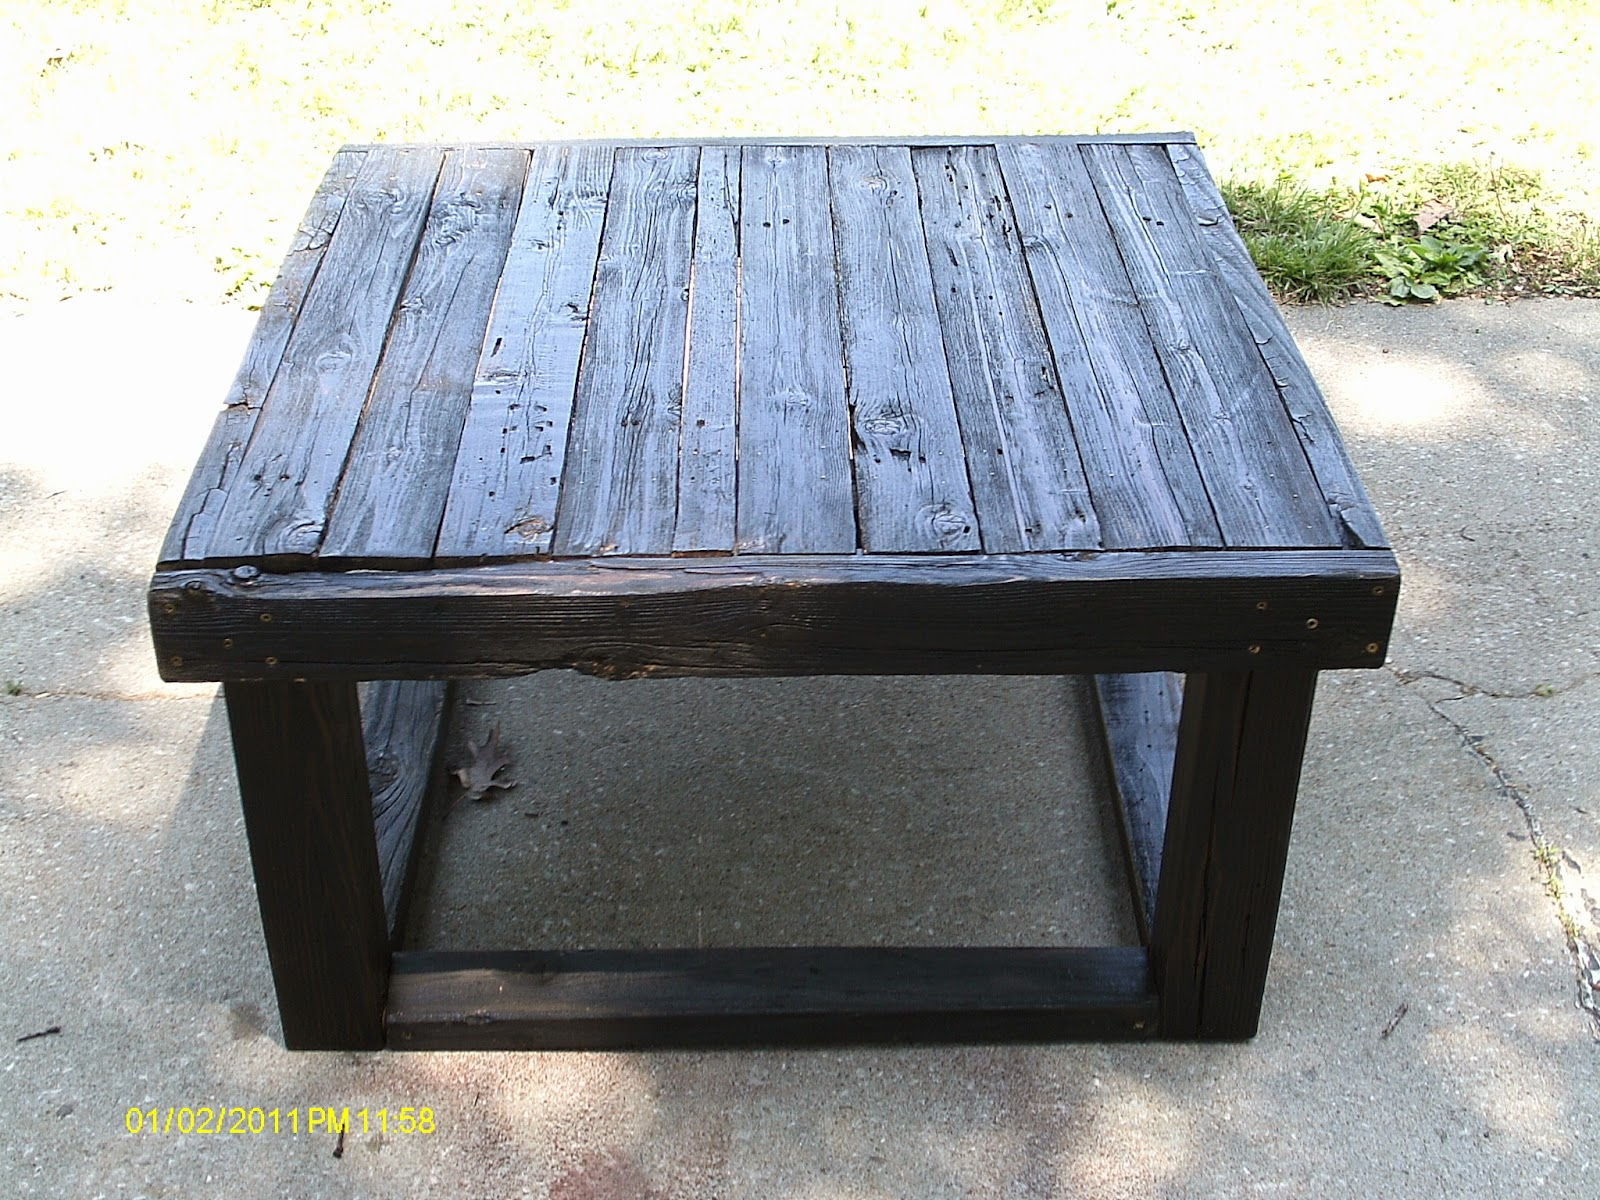 Rustic coffee tables unique and handmade from the log - I Wanted To Make A Matching Living Room Set So I Did The Advantages Of Being Your Own Boss Lol The Coffee Table Is 19 5 Tall X 36 X 36